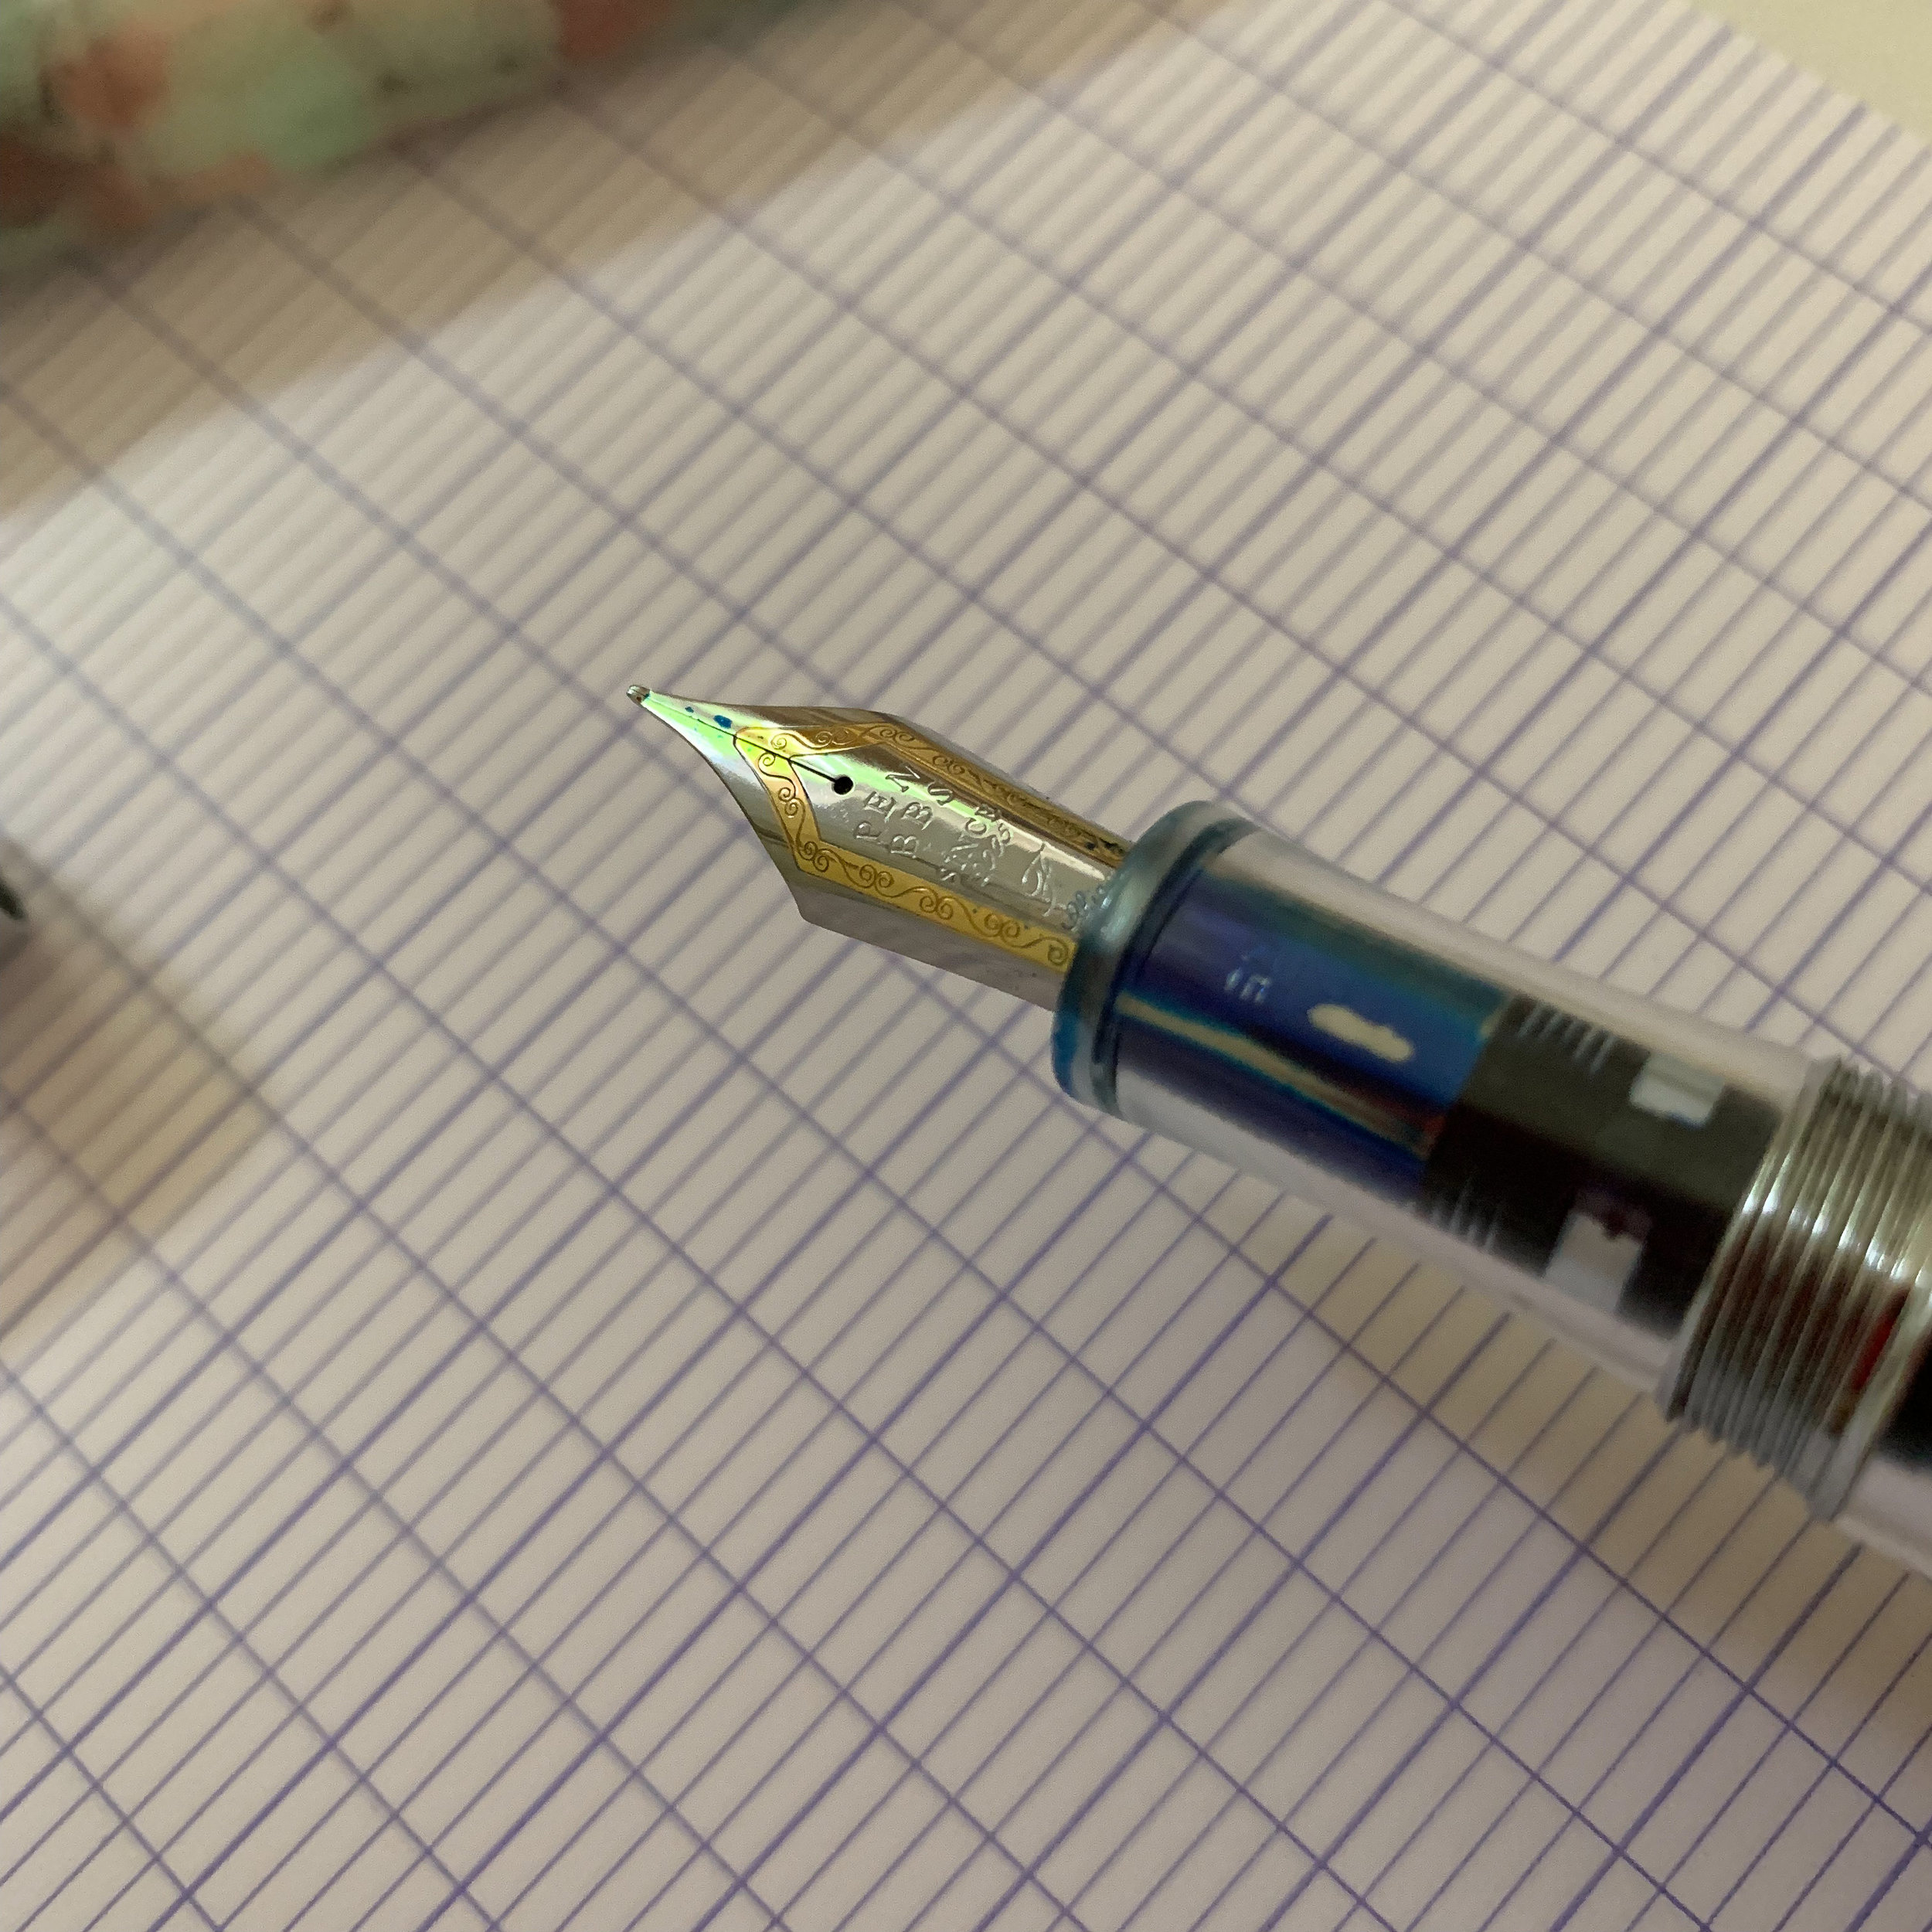 The two-toned PenBBS nib is also Chinese-made, to the best of my knowledge, and came perfectly tuned. Here is a shot of the engraving.